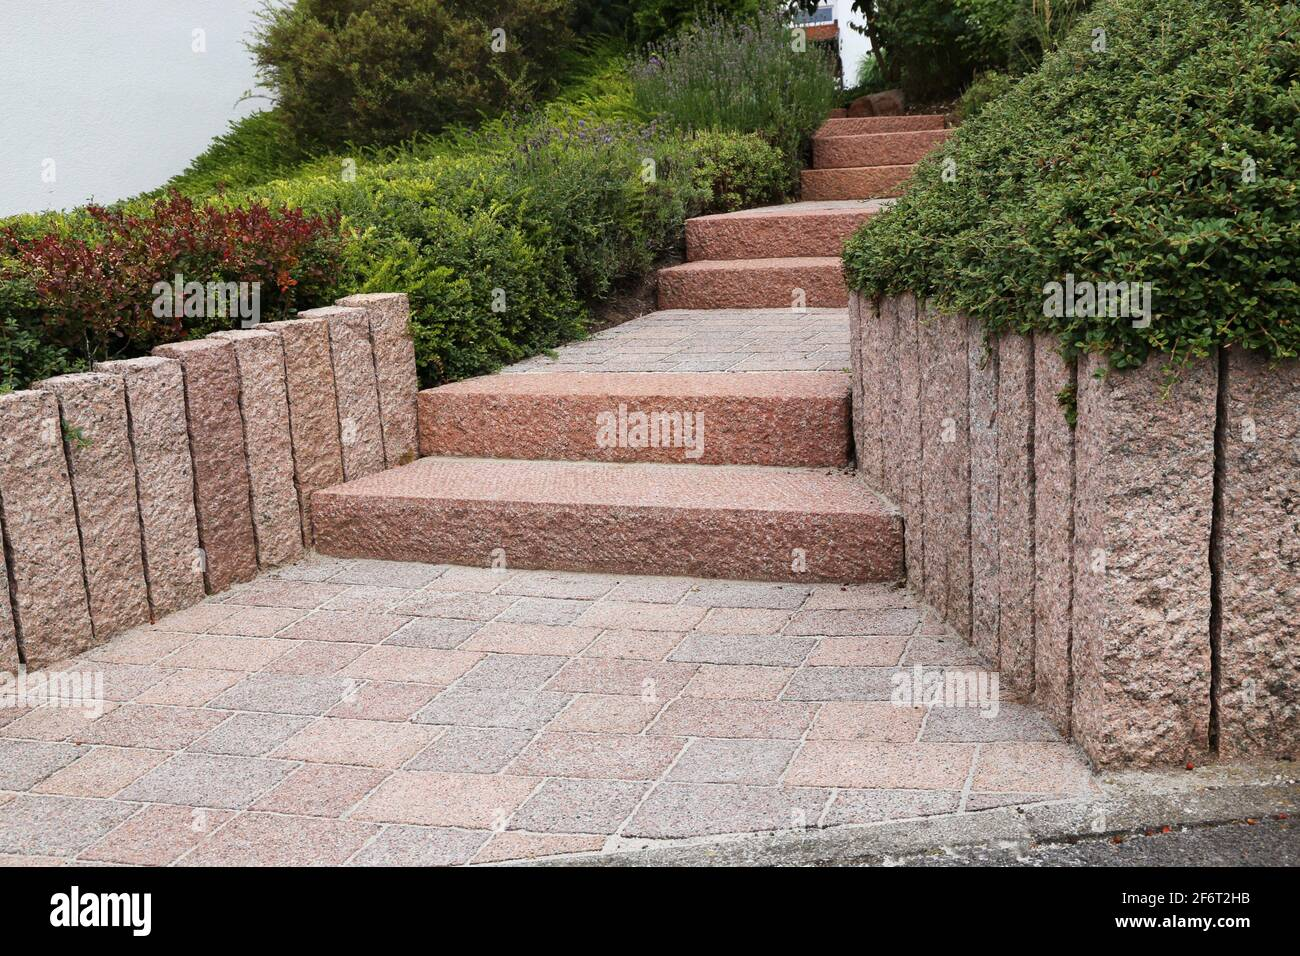 Neat and tidy front yard with solid block steps, decorative gravel and planting. Stock Photo